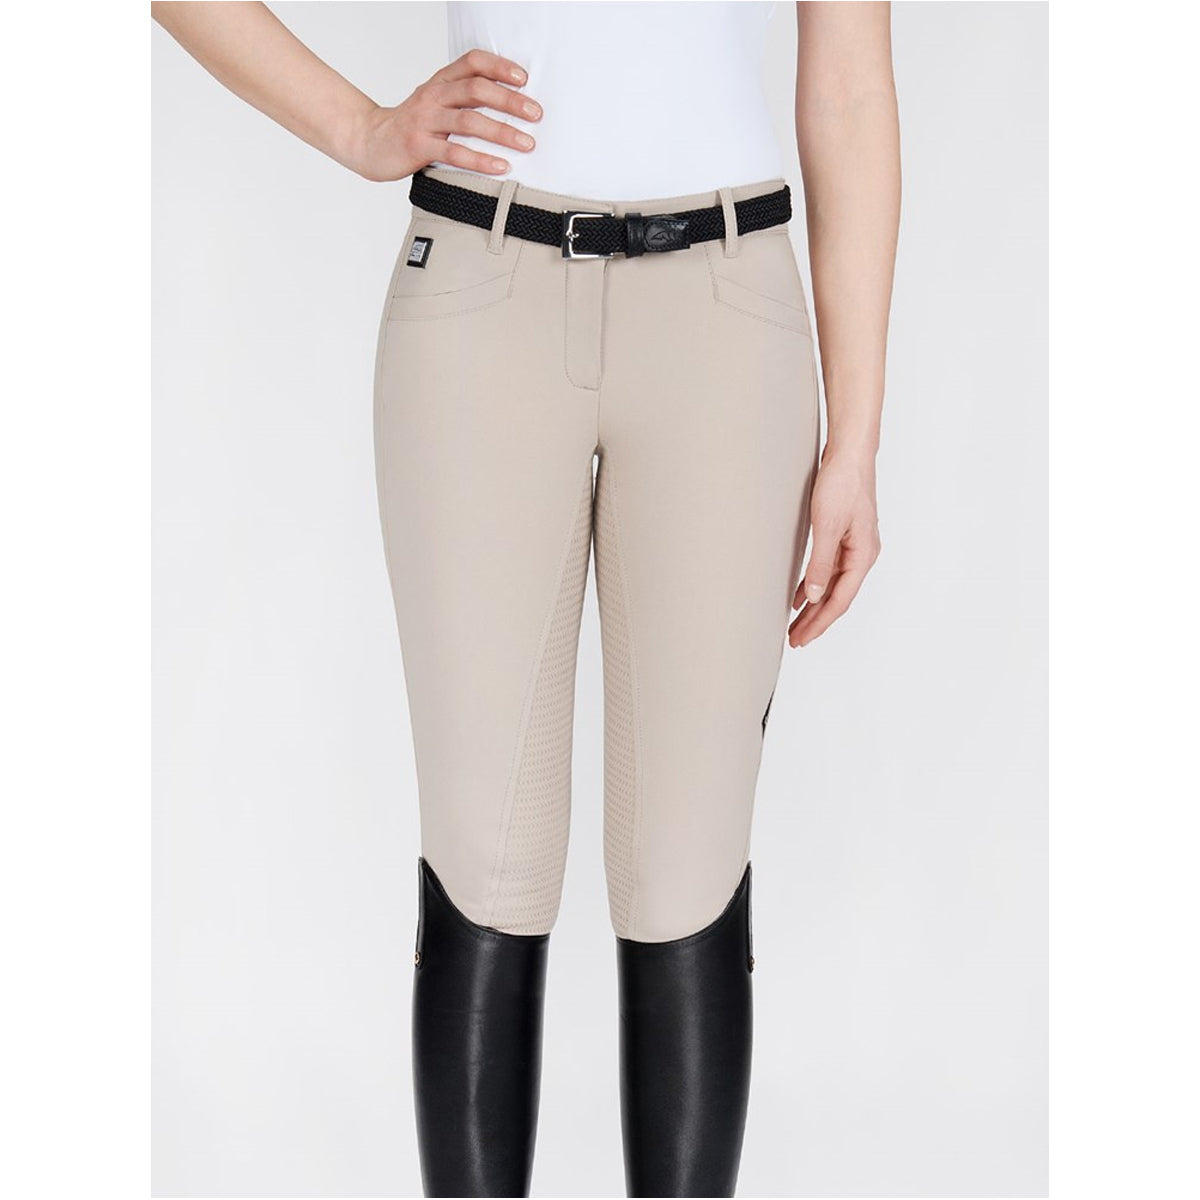 Equiline Women's Cedar Full Seat Breech